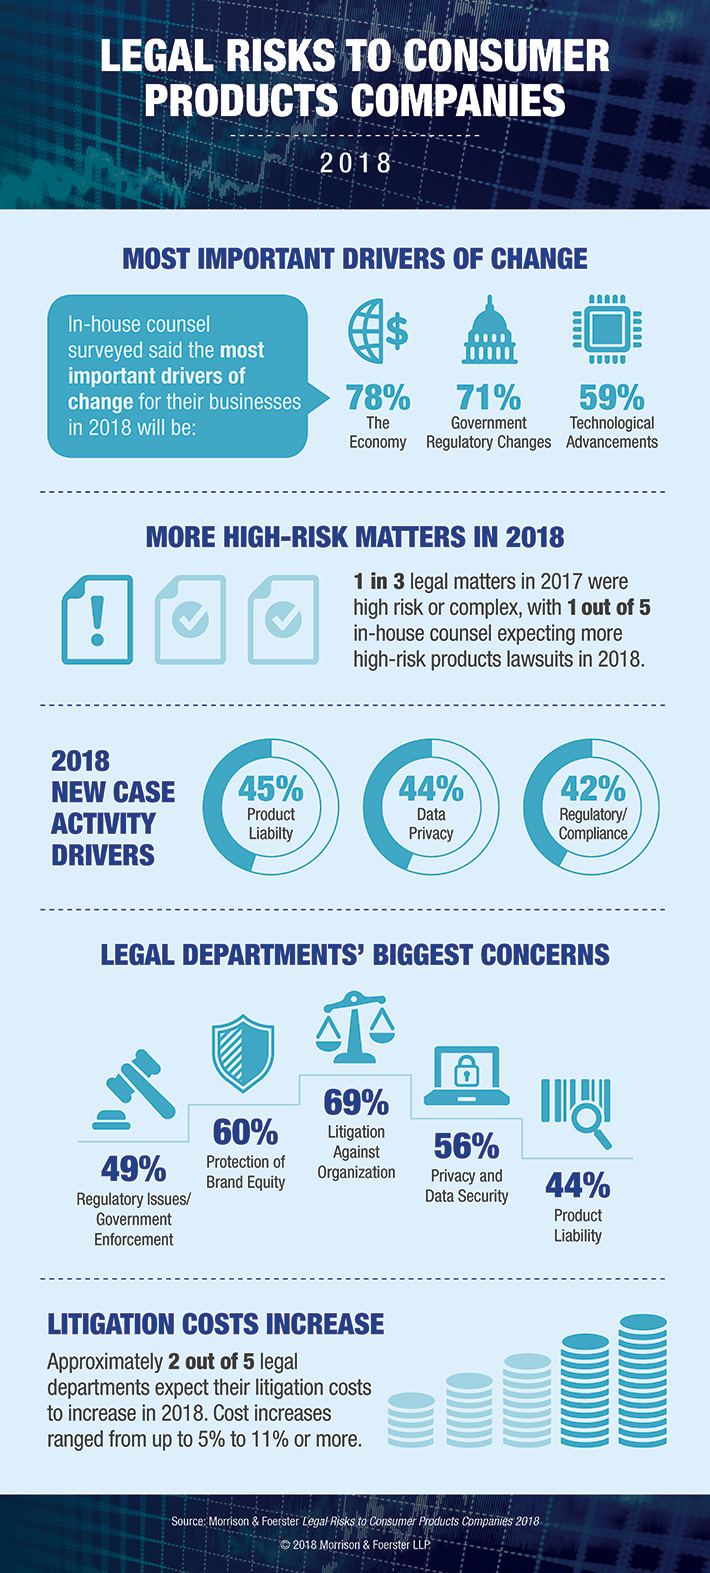 What are the biggest legal risks facing consumer products companies in 2018?